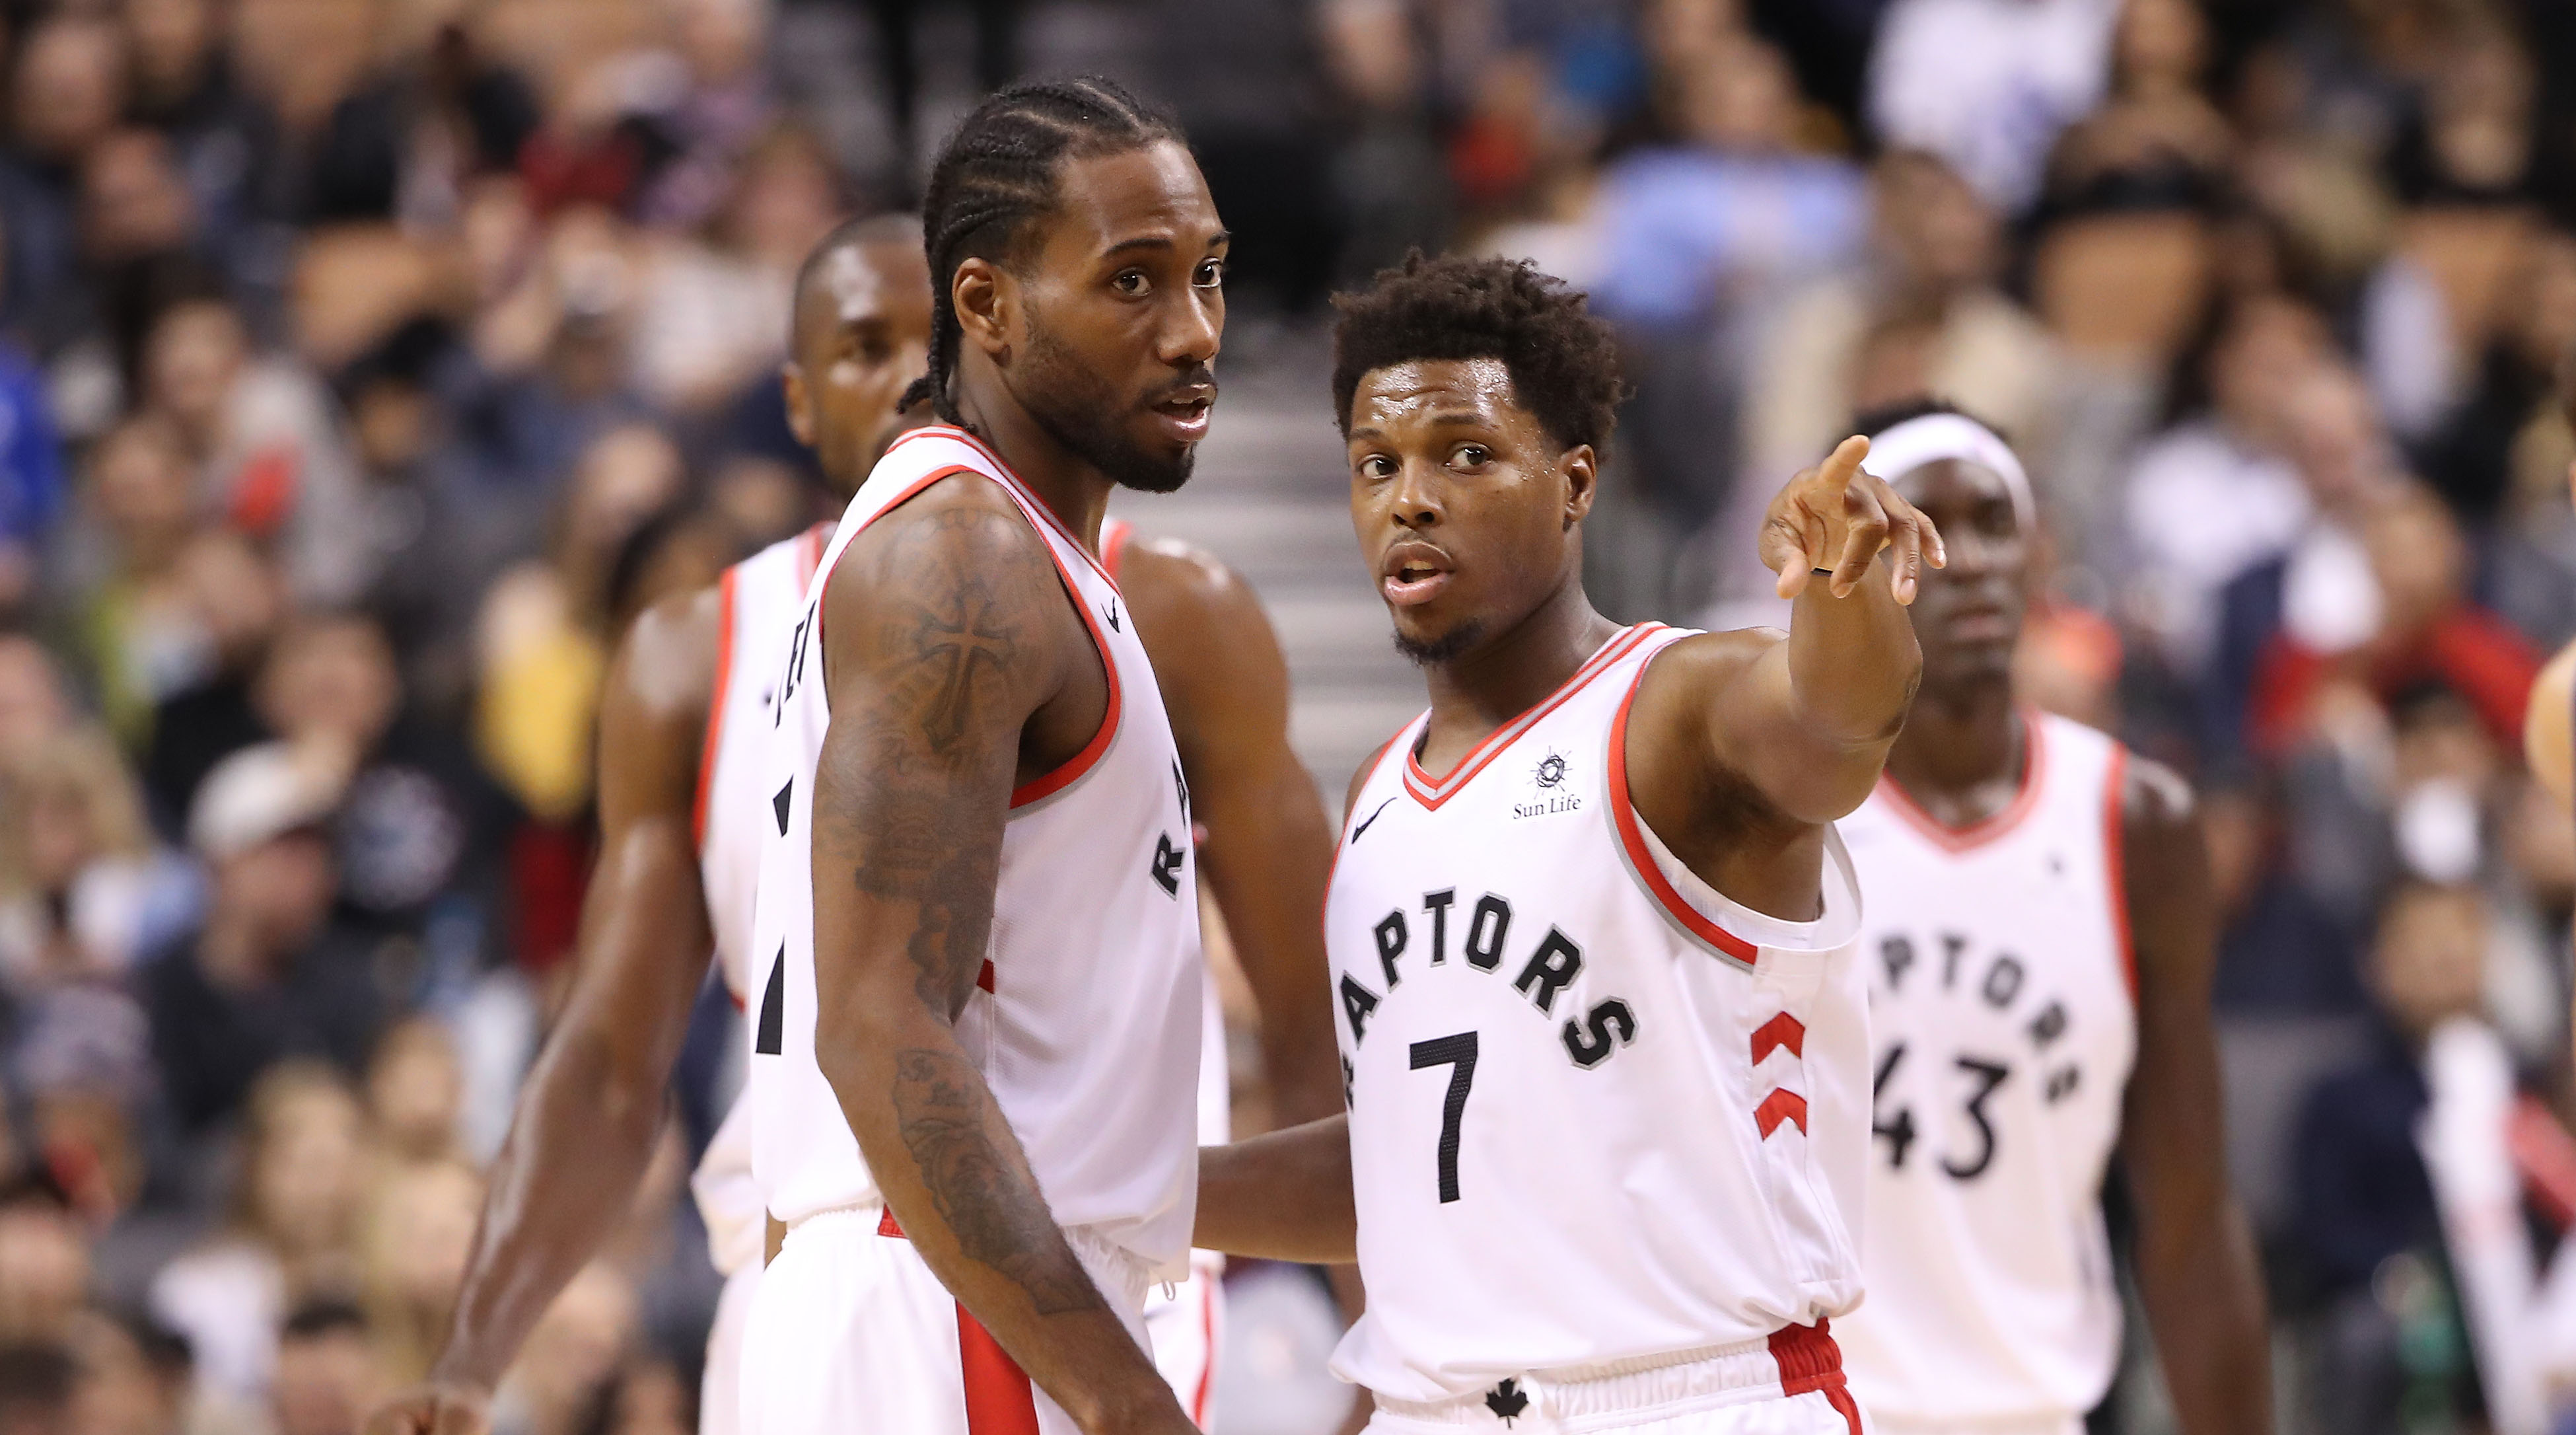 c10f529eef42 Raptors rely on playoff experience in potential Finals run